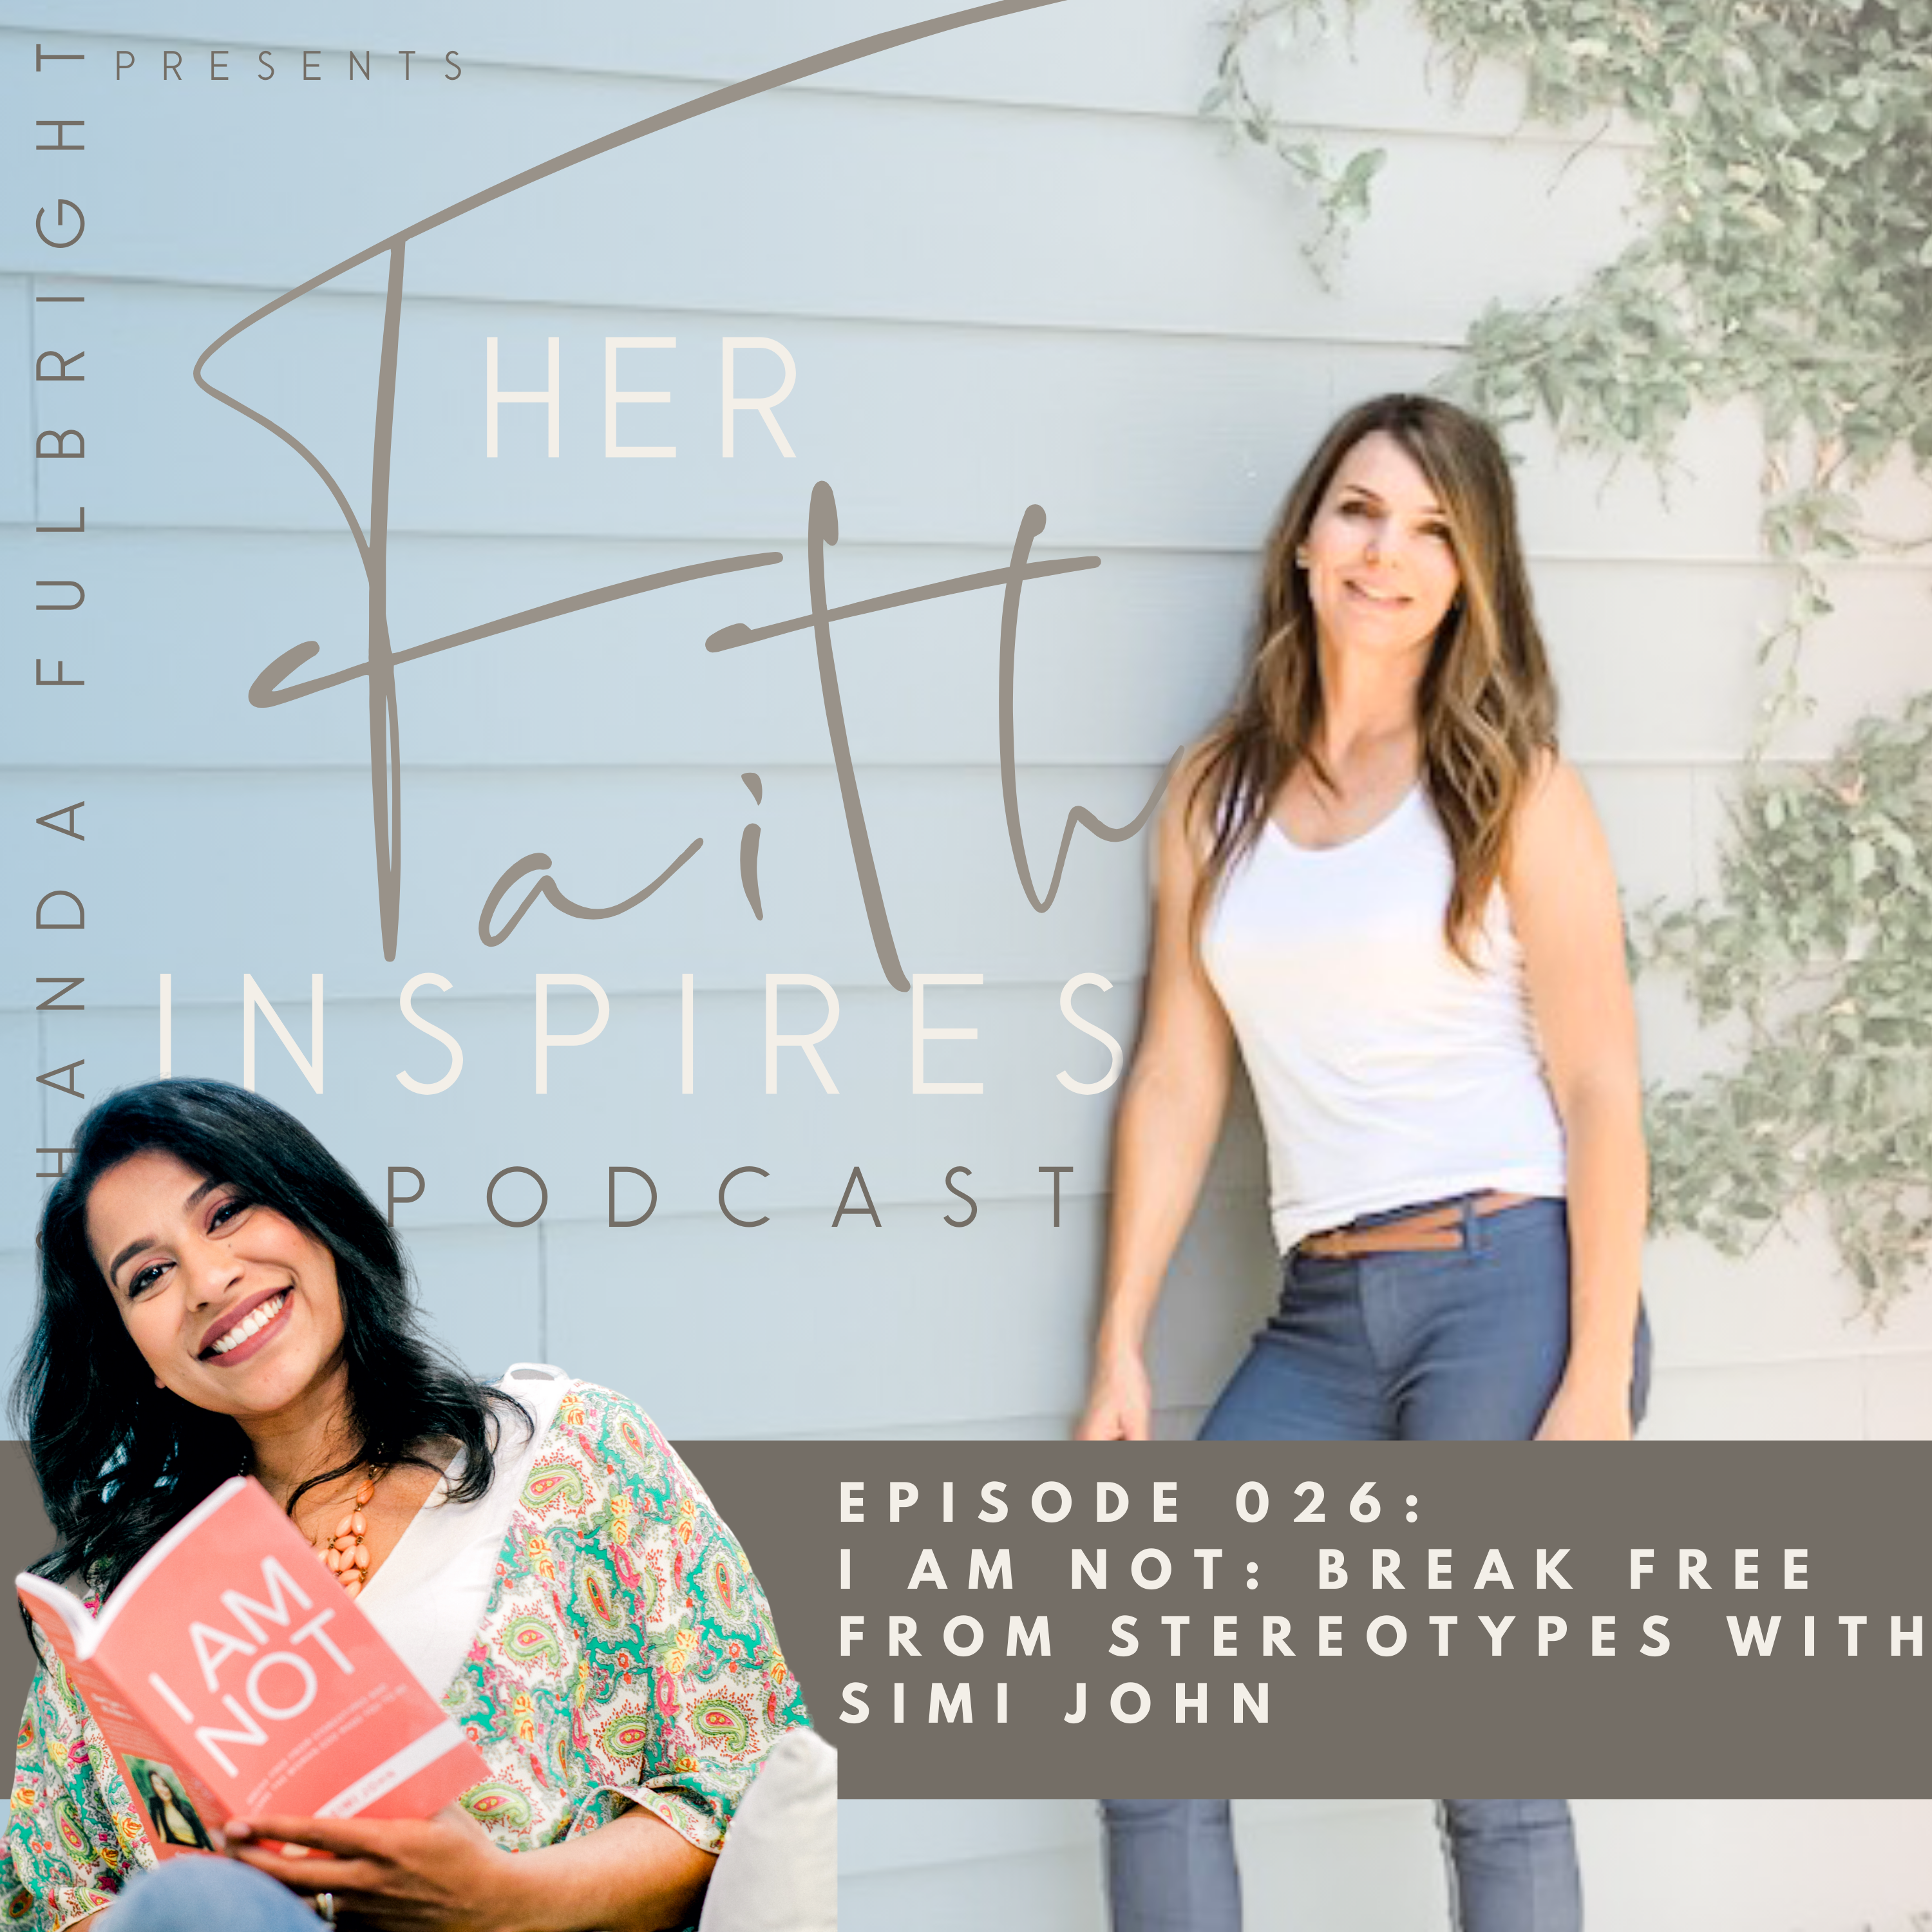 SF Podcast Episode 26 - HER FAITH INSPIRES 026 : I Am Not: Break Free From Stereotypes with Simi John